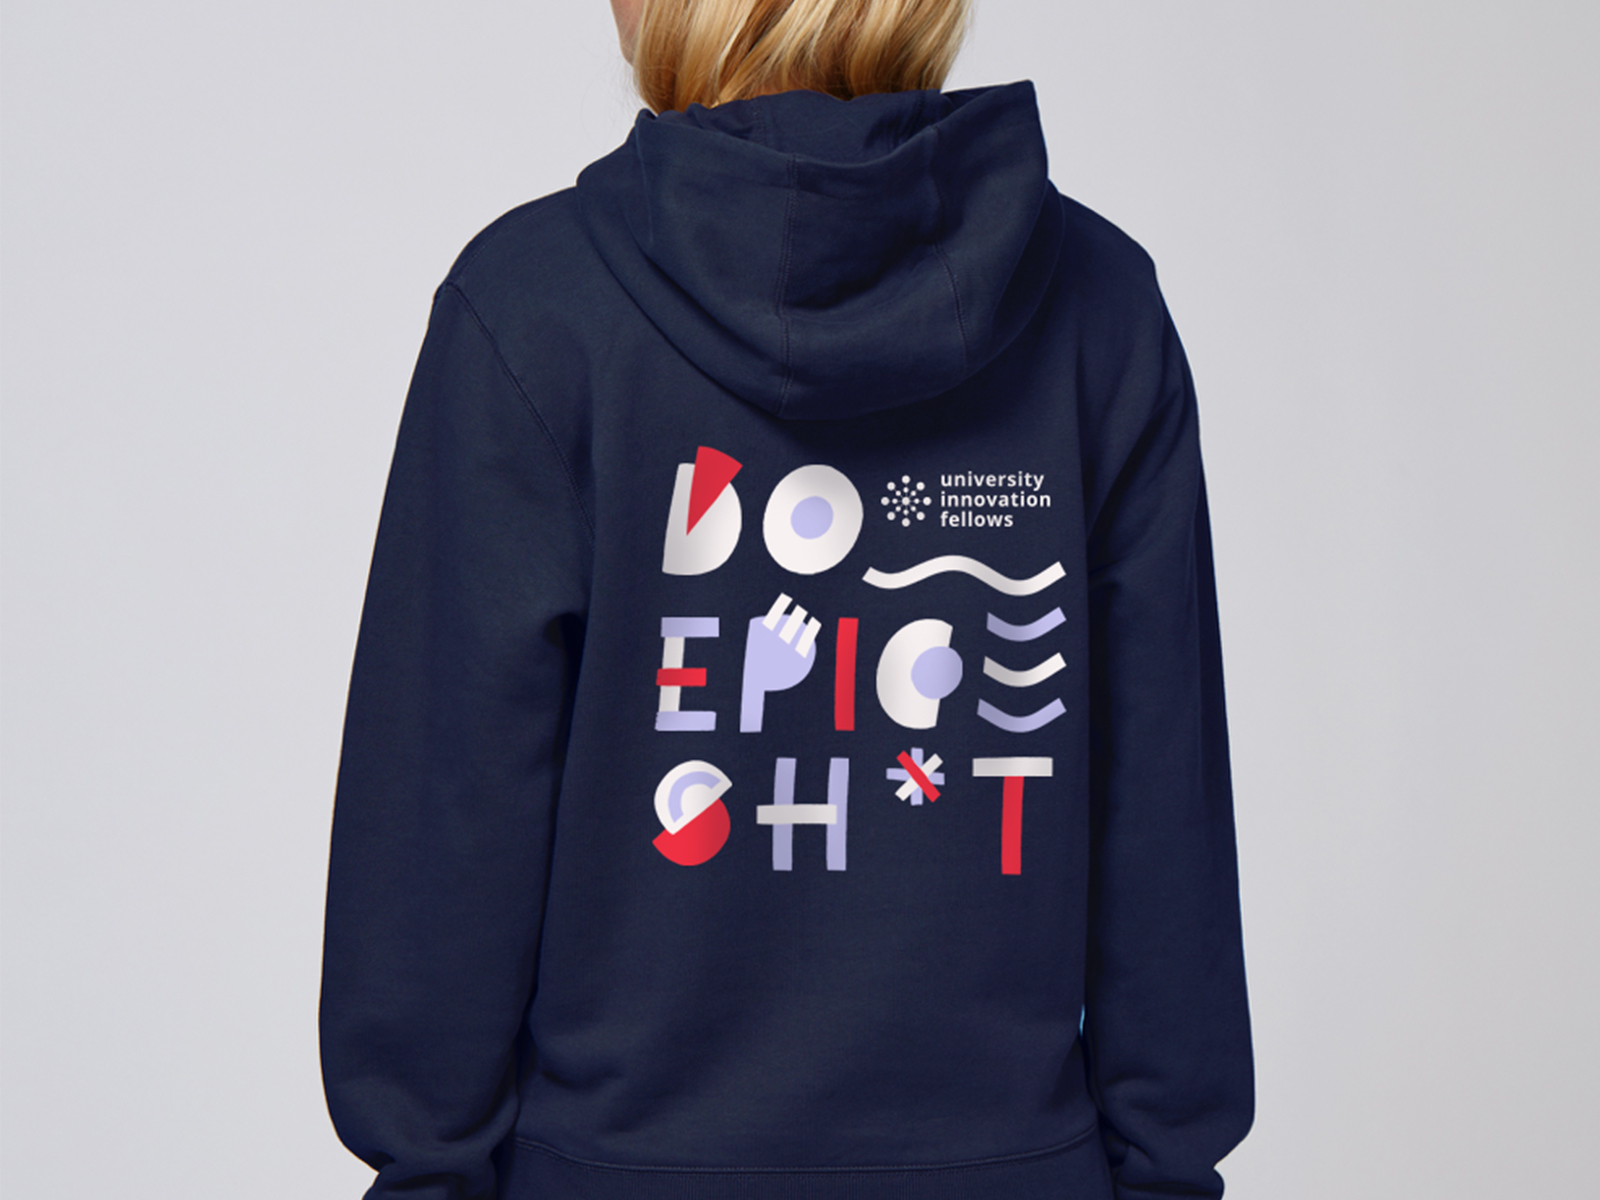 do-epic-sht-hoodie